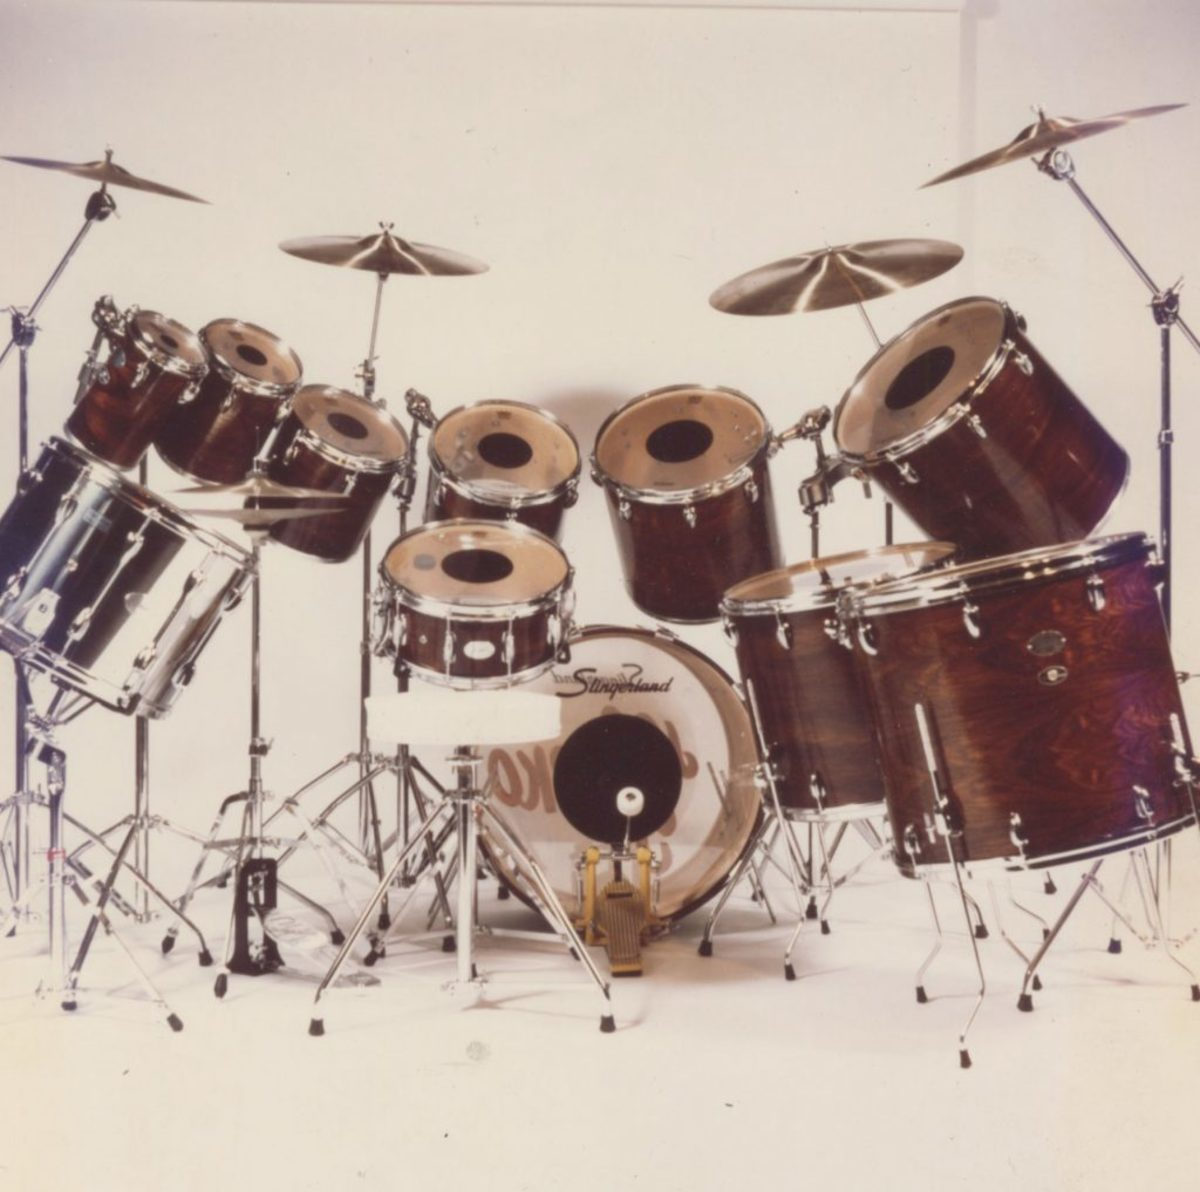 """Joe Stefko's drum kit from the 1977/1978 Meat Loaf """"Bat Out of Hell"""" world tour. Photo courtesy of Backstage Auctions."""